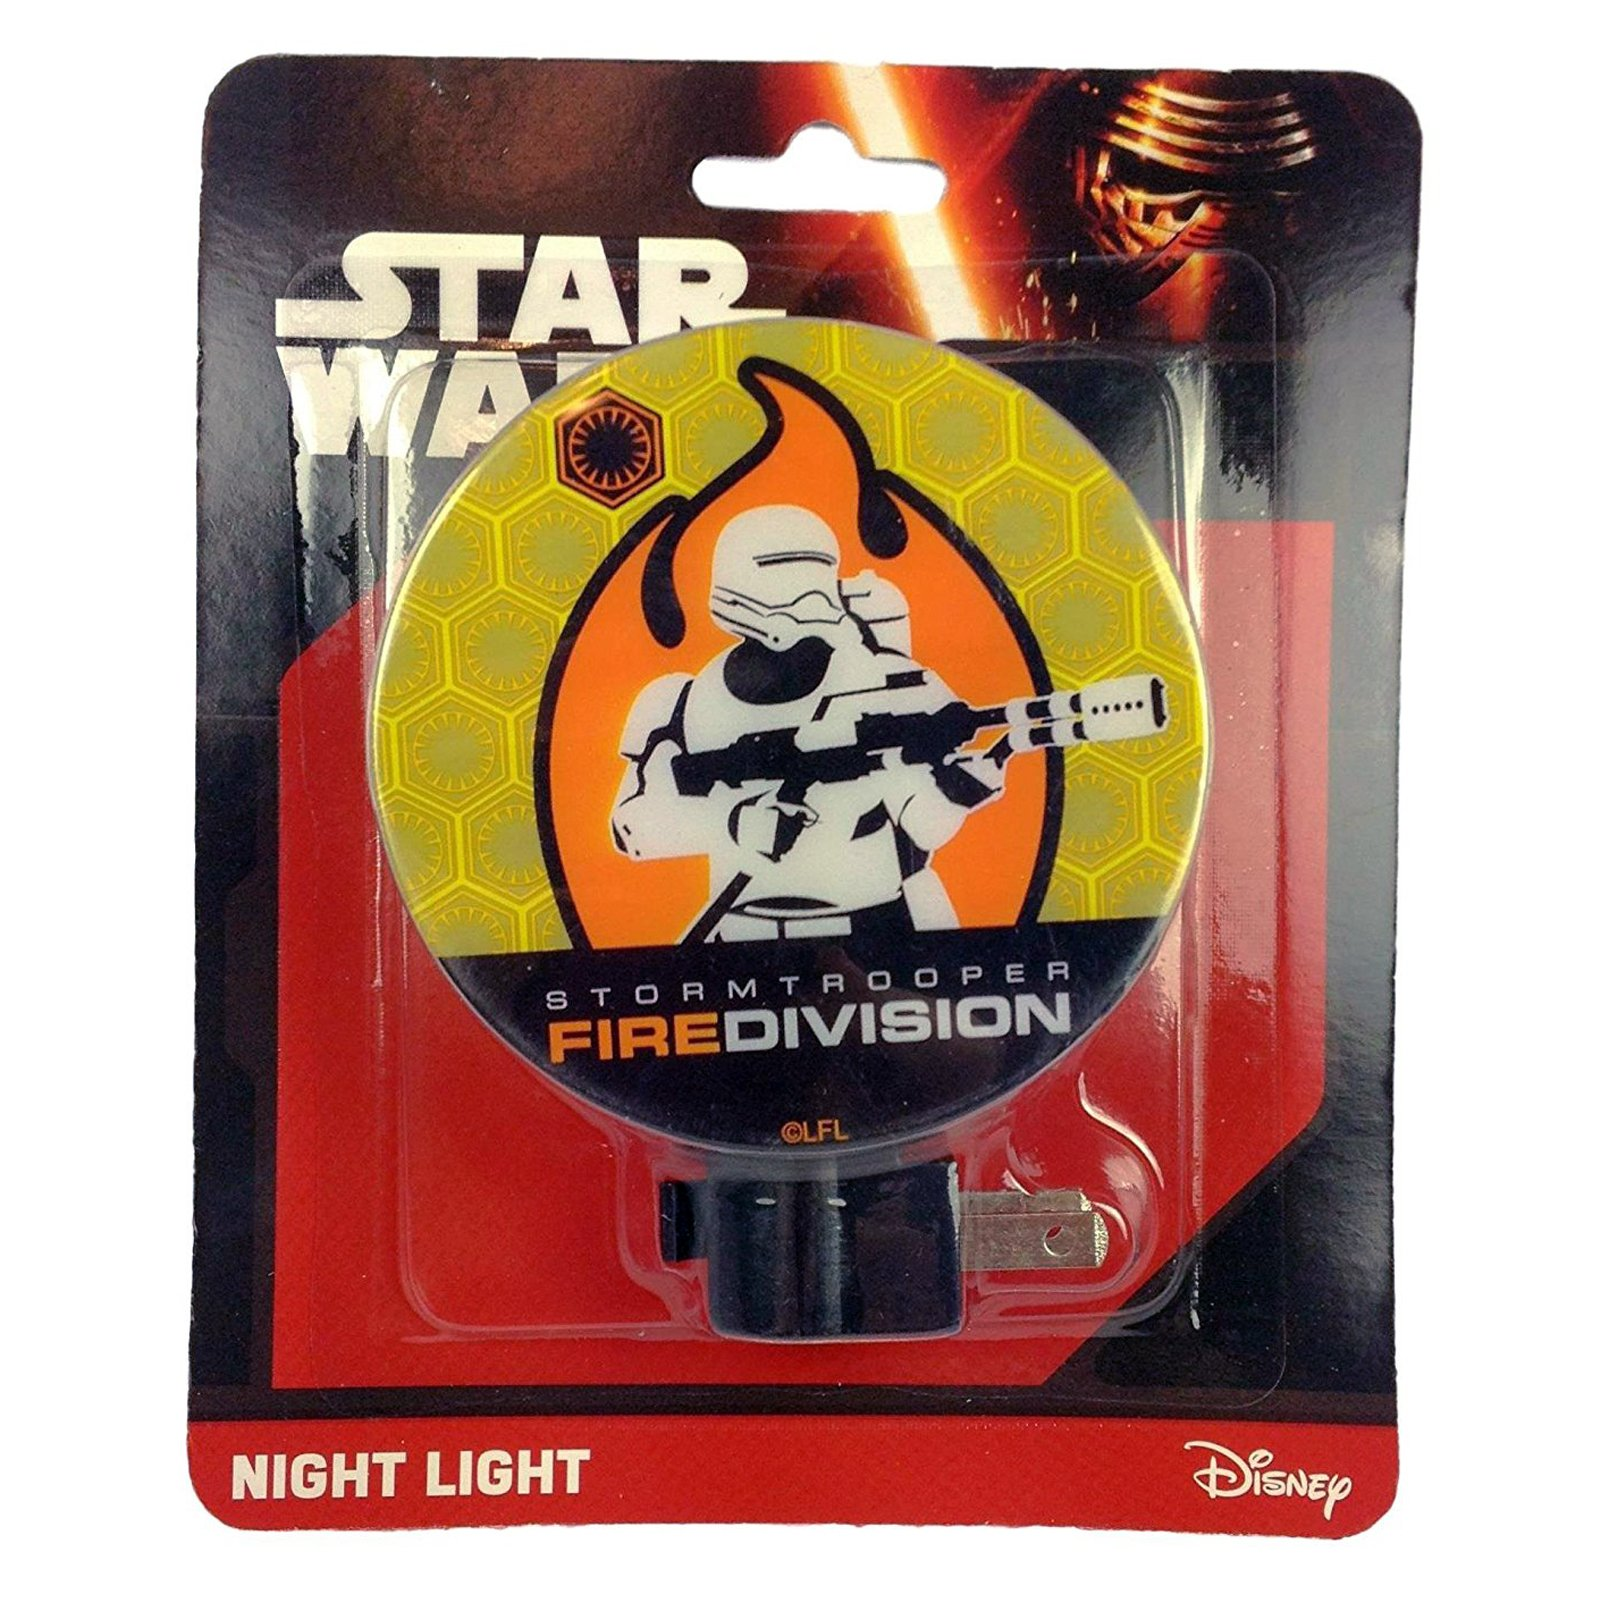 Disney Star Wars Boys Night Light Kids Bedroom Home Decor - Resistance